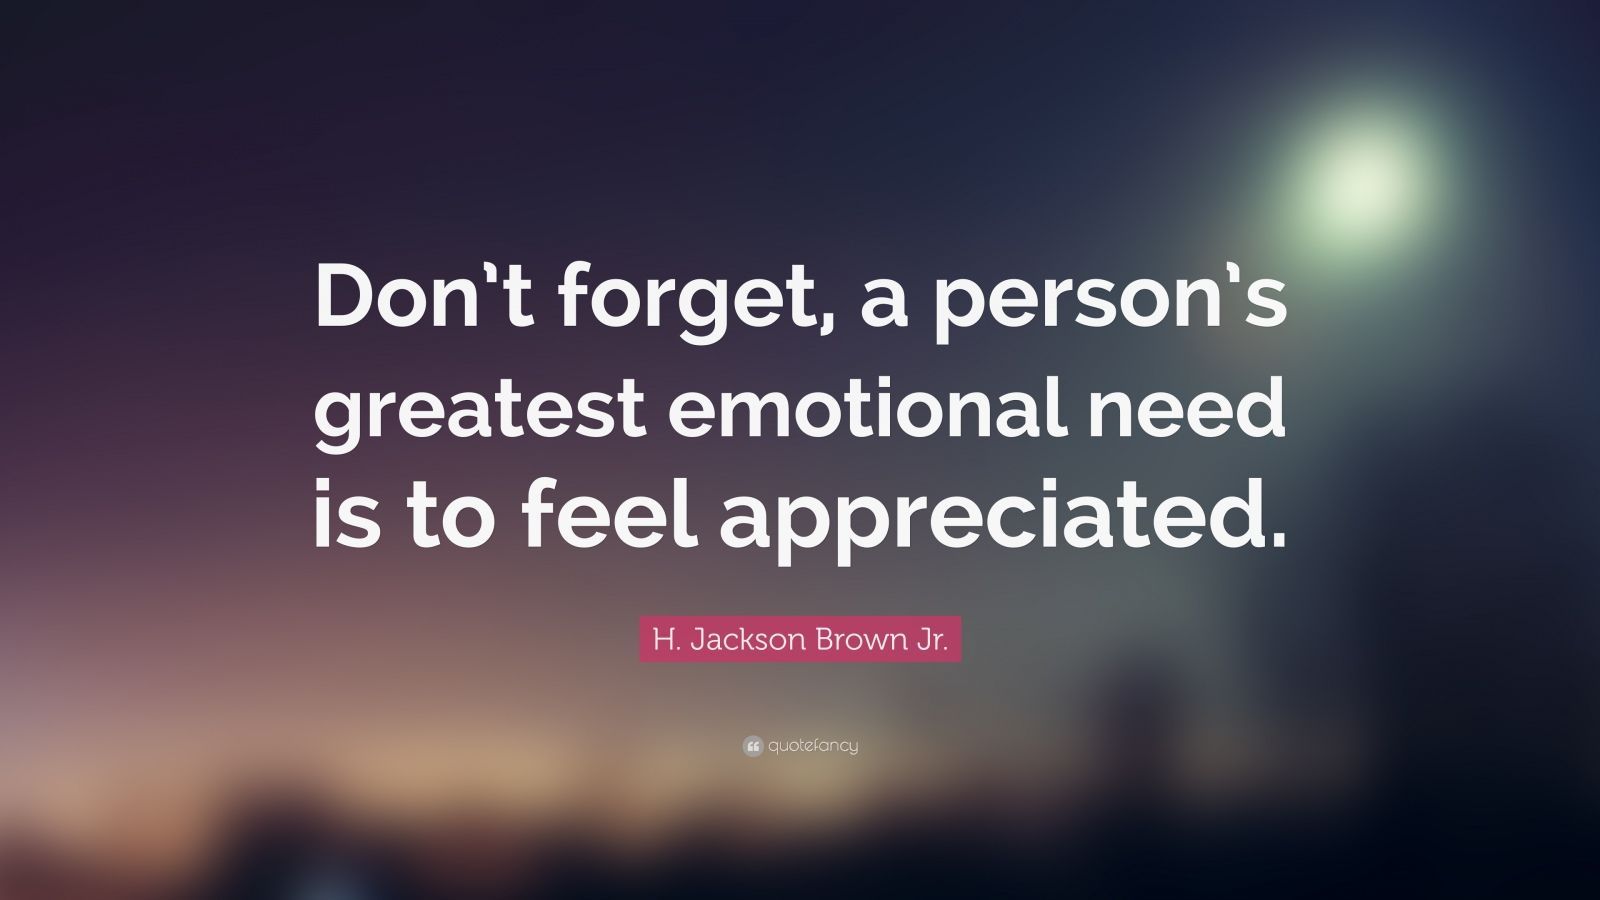 "Appreciation Quotes: ""Don't forget, a person's greatest emotional need is to feel appreciated."" — H. Jackson Brown Jr."